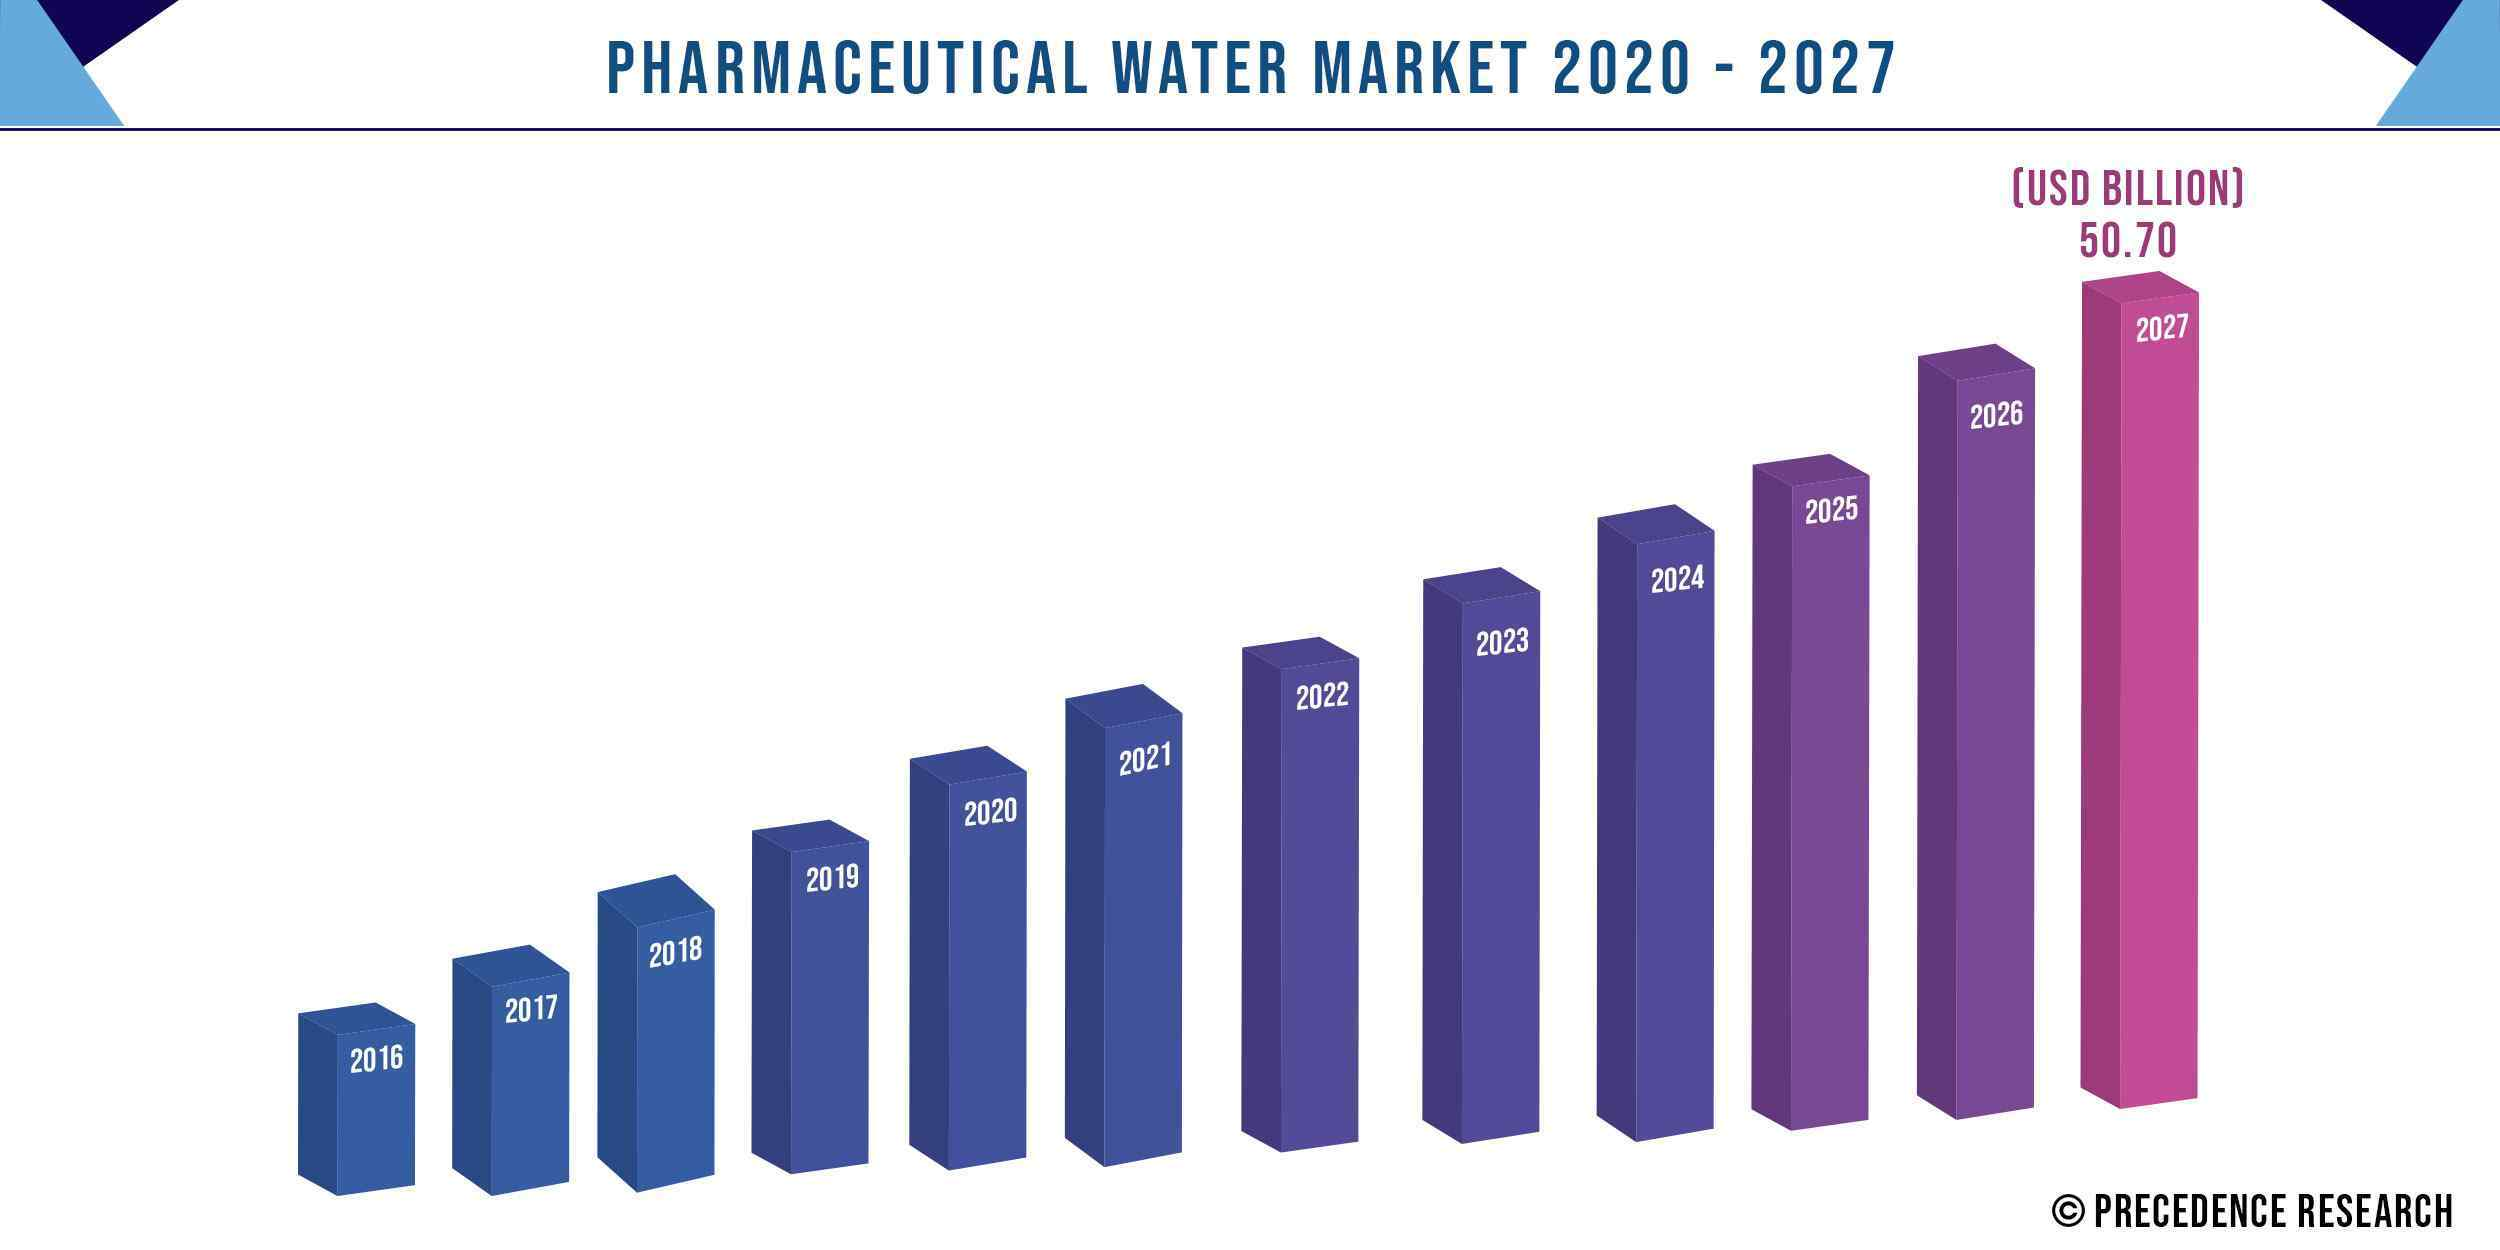 Pharmaceutical Water Market Size 2016 to 2027